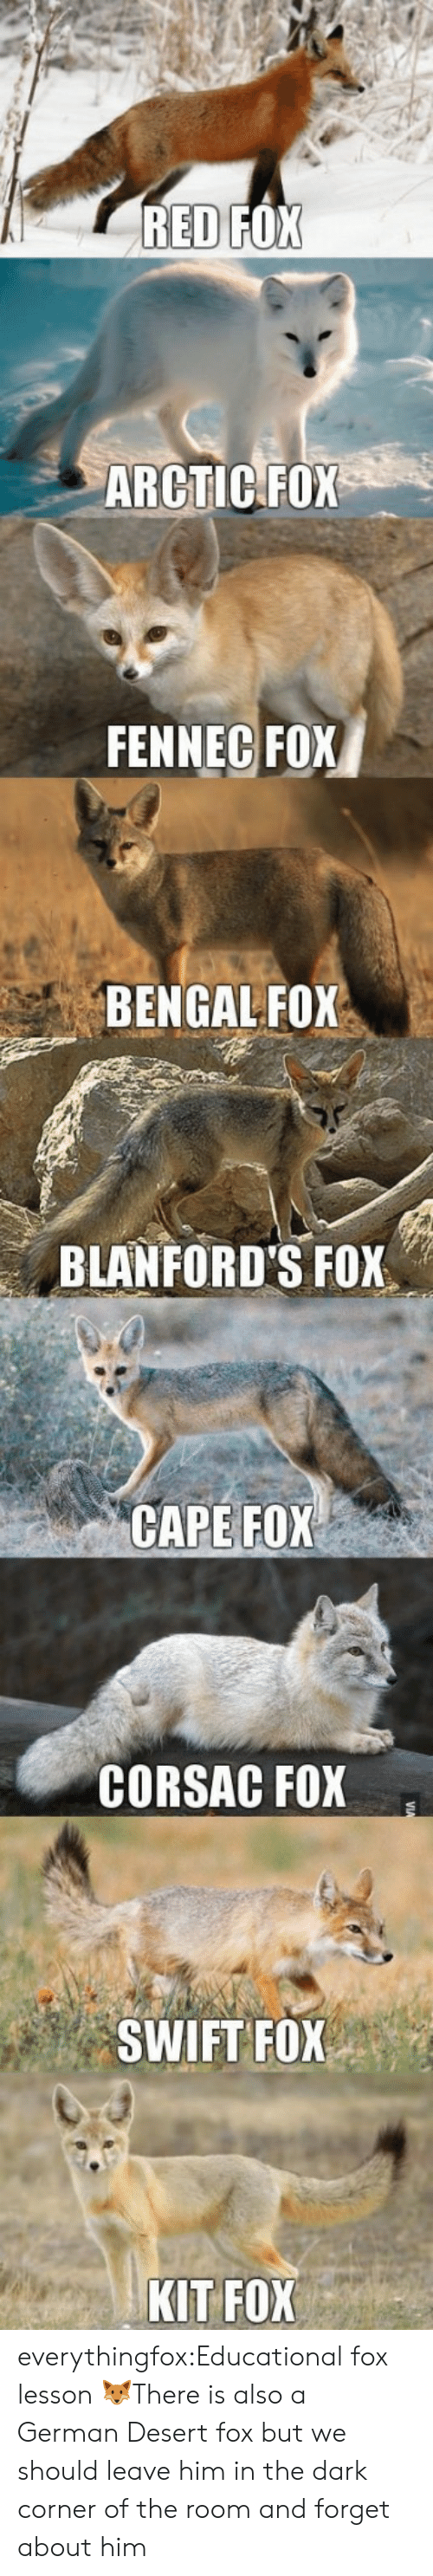 cape: ARCTIC FOX  FENNEC FOX  BENGAL FOX  BLANFORD'S FOX  CAPE FOX  CORSAC FOX  SWIFT FOX  KIT FOX everythingfox:Educational fox lesson 🦊There is also a German Desert fox but we should leave him in the dark corner of the room and forget about him